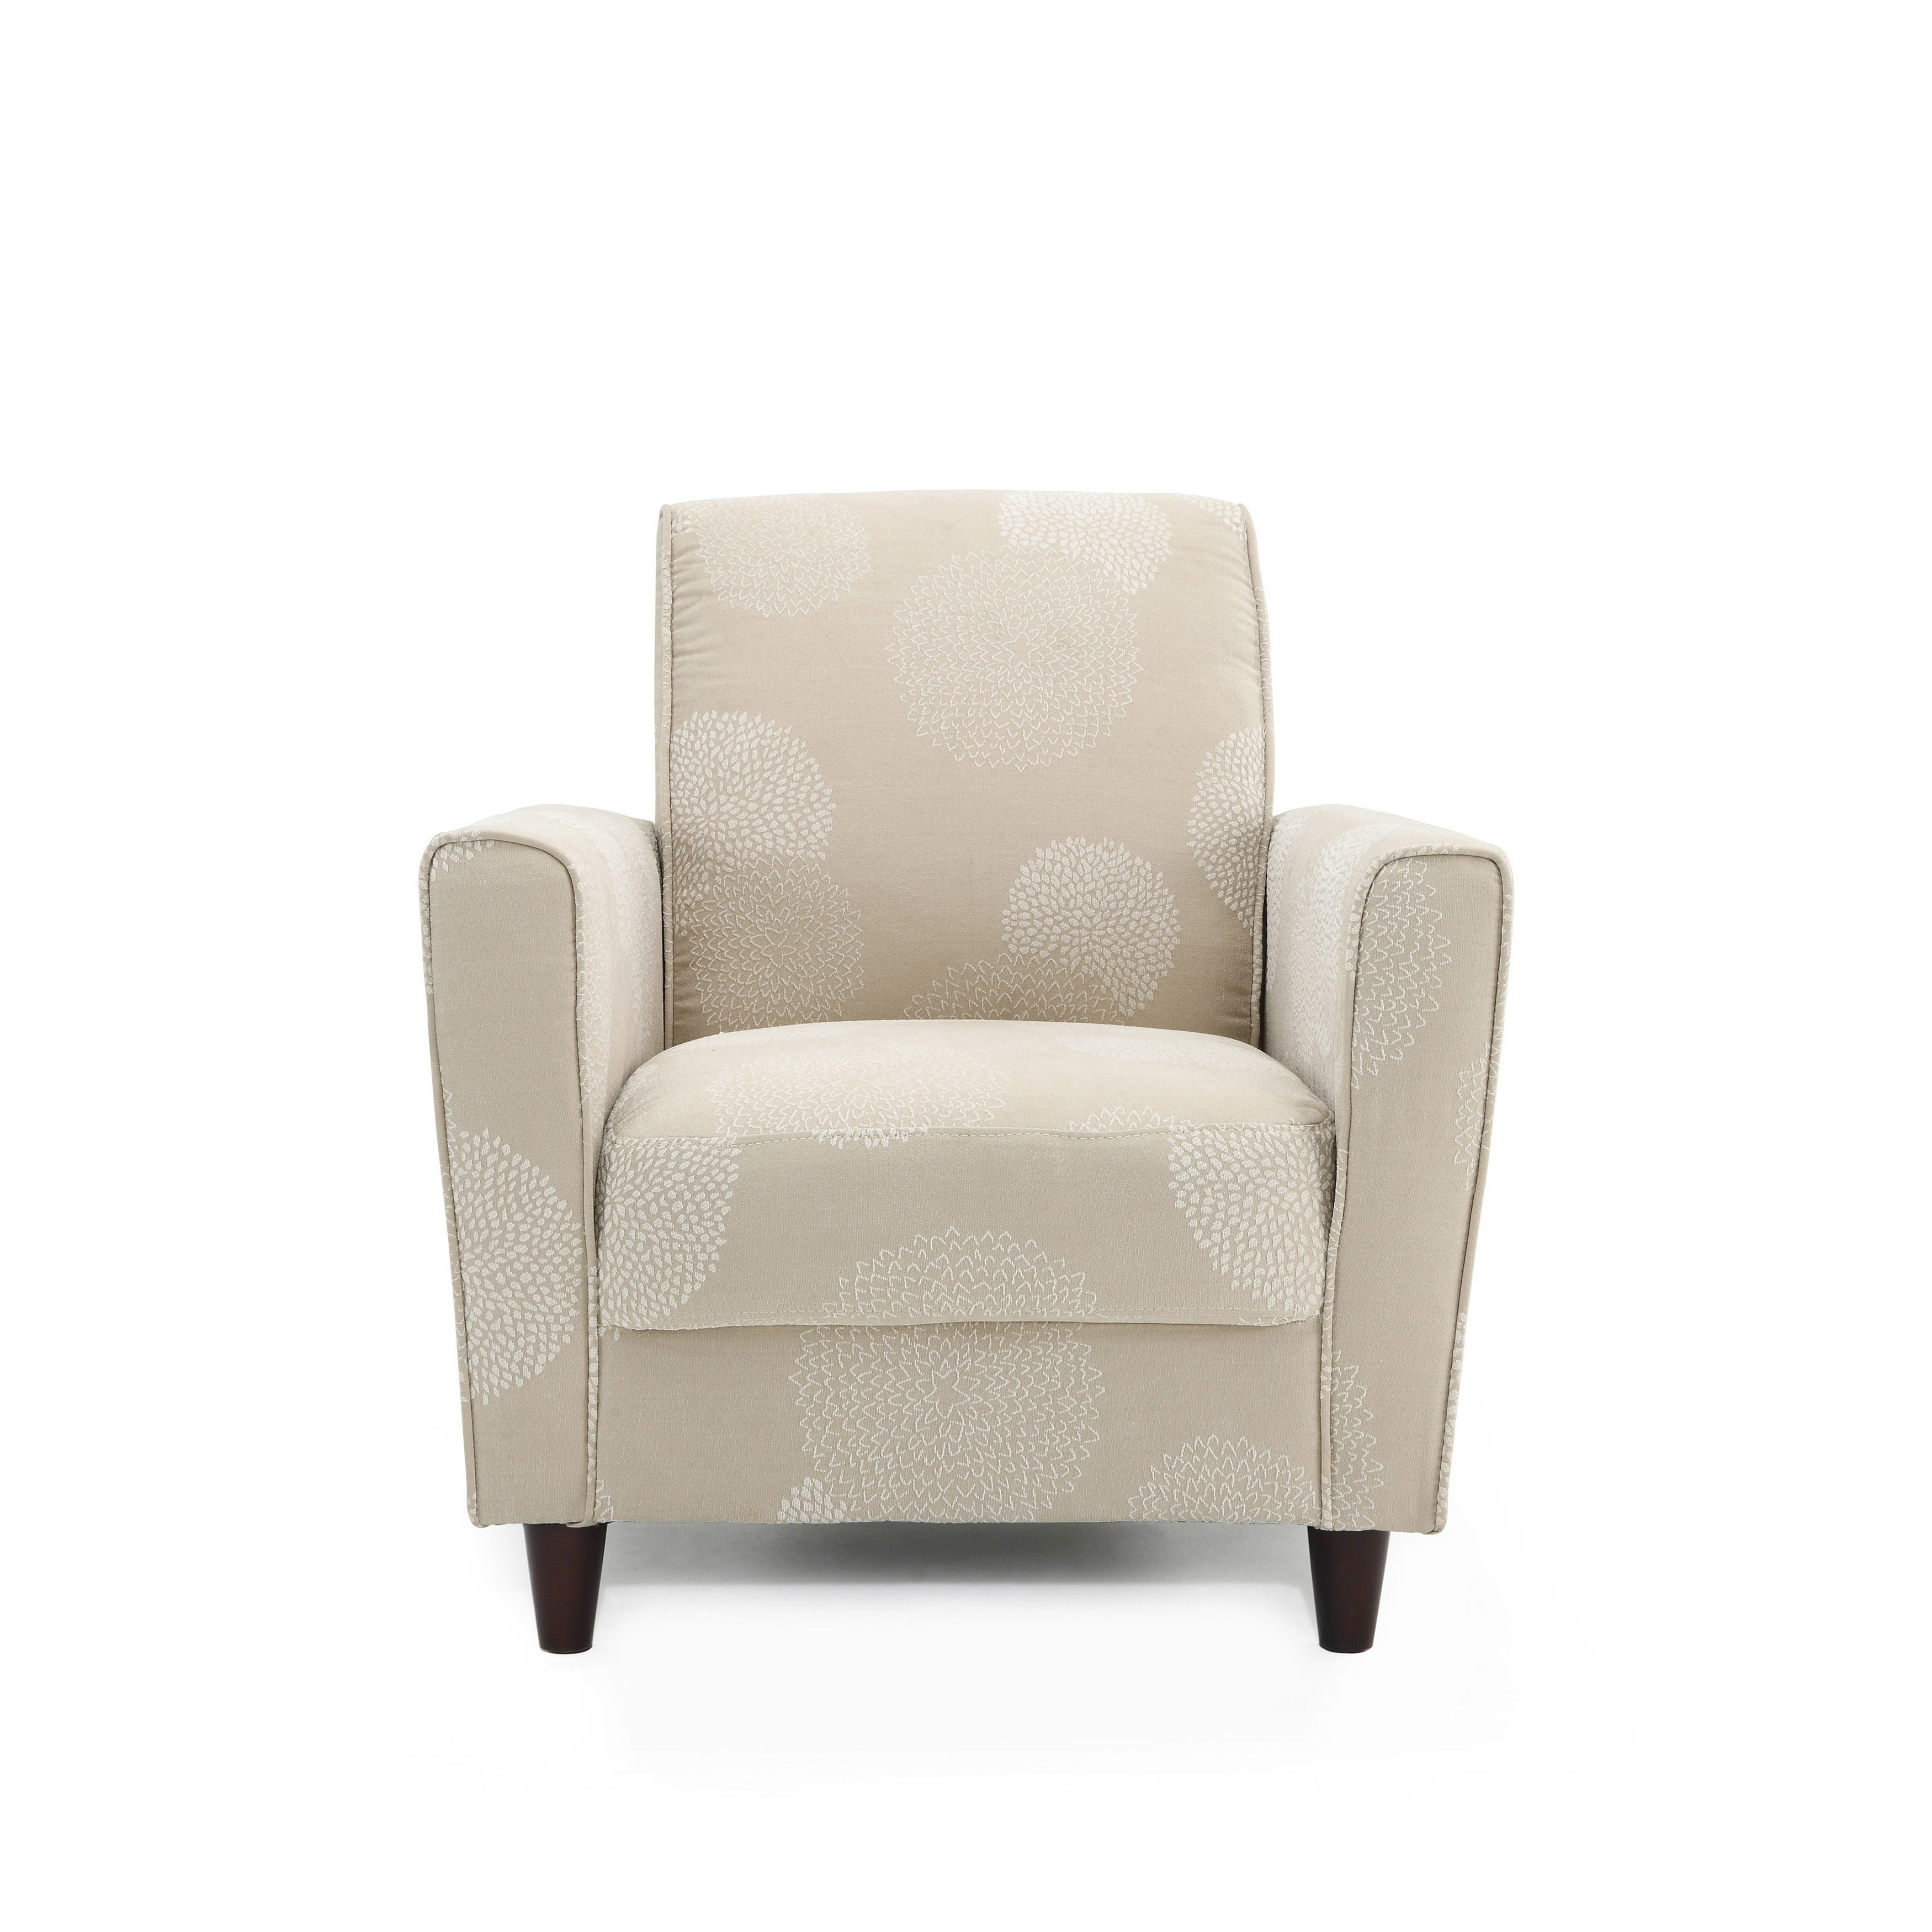 Perfect Ivory Living Room Chairs For Less | Overstock QX45